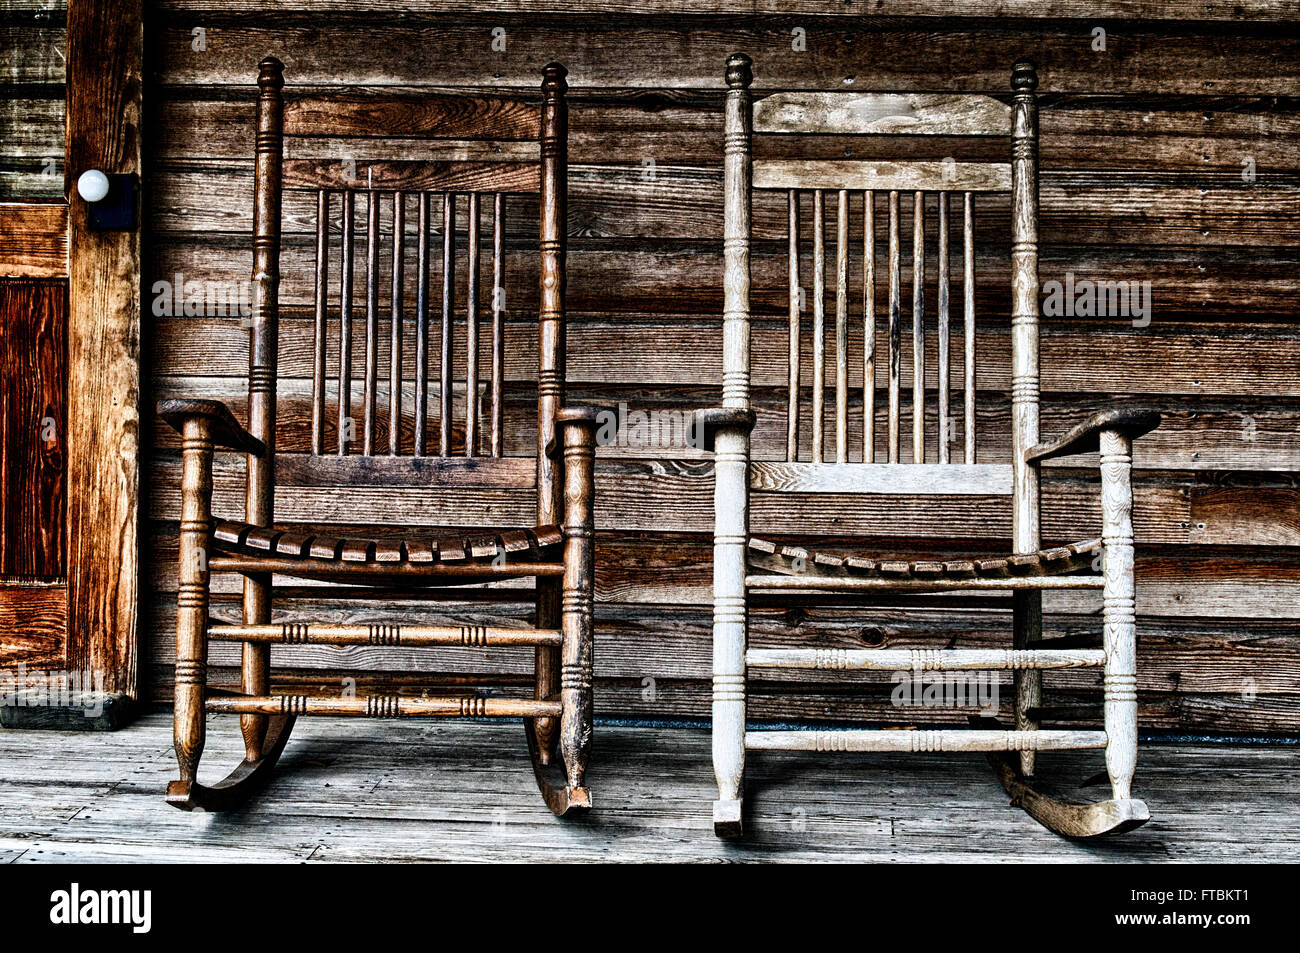 Rocking Chair On Porch Old Stock Photos  Rocking Chair On